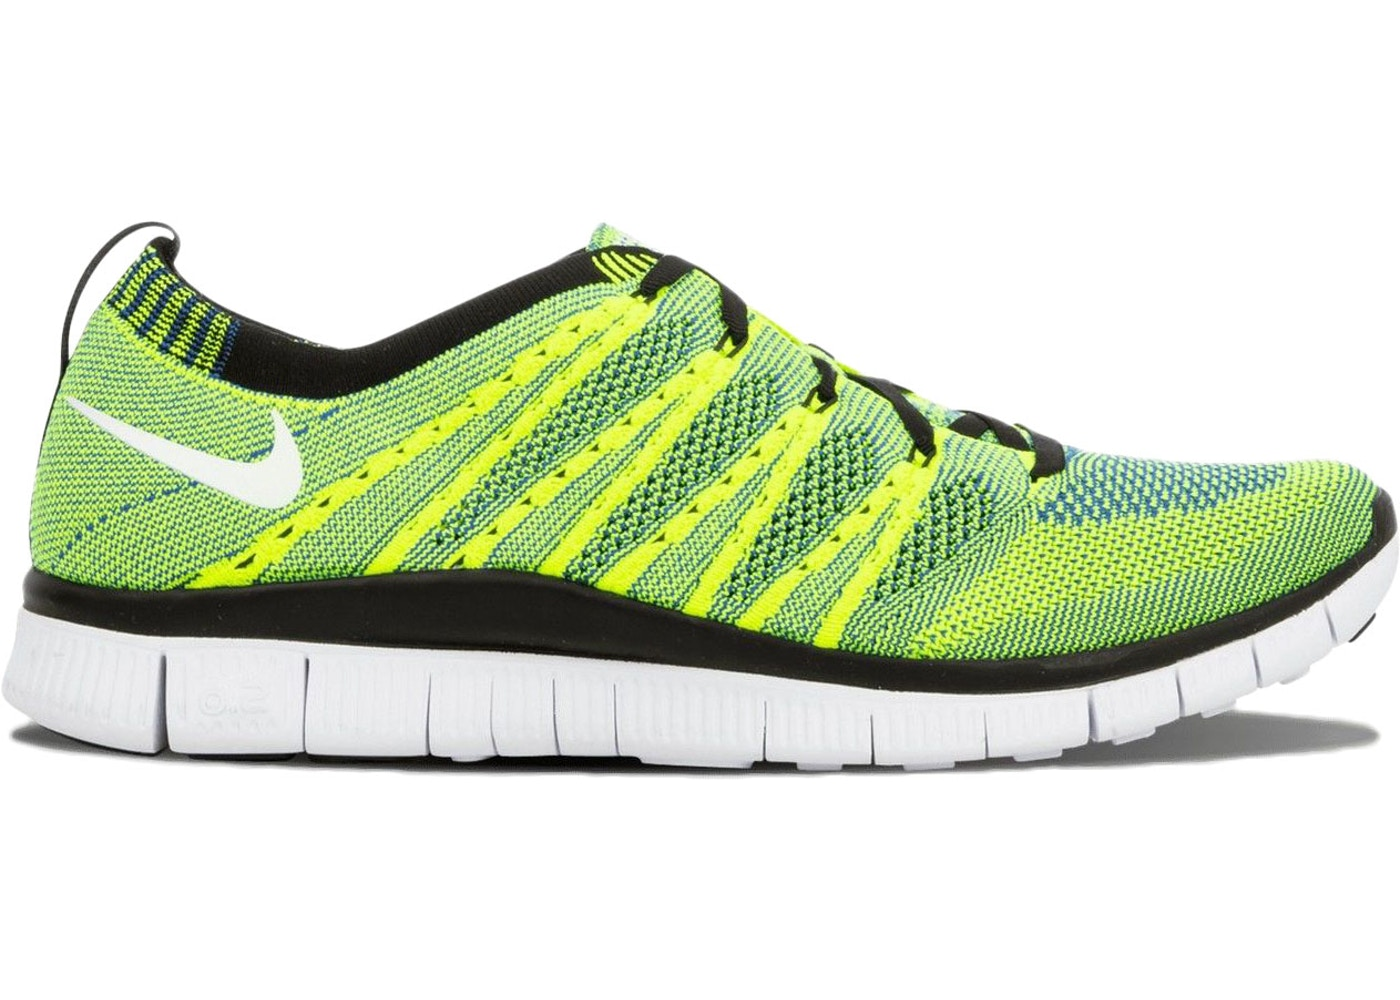 reputable site d5774 93f11 Nike Free Flyknit HTM Volt - 616171-740